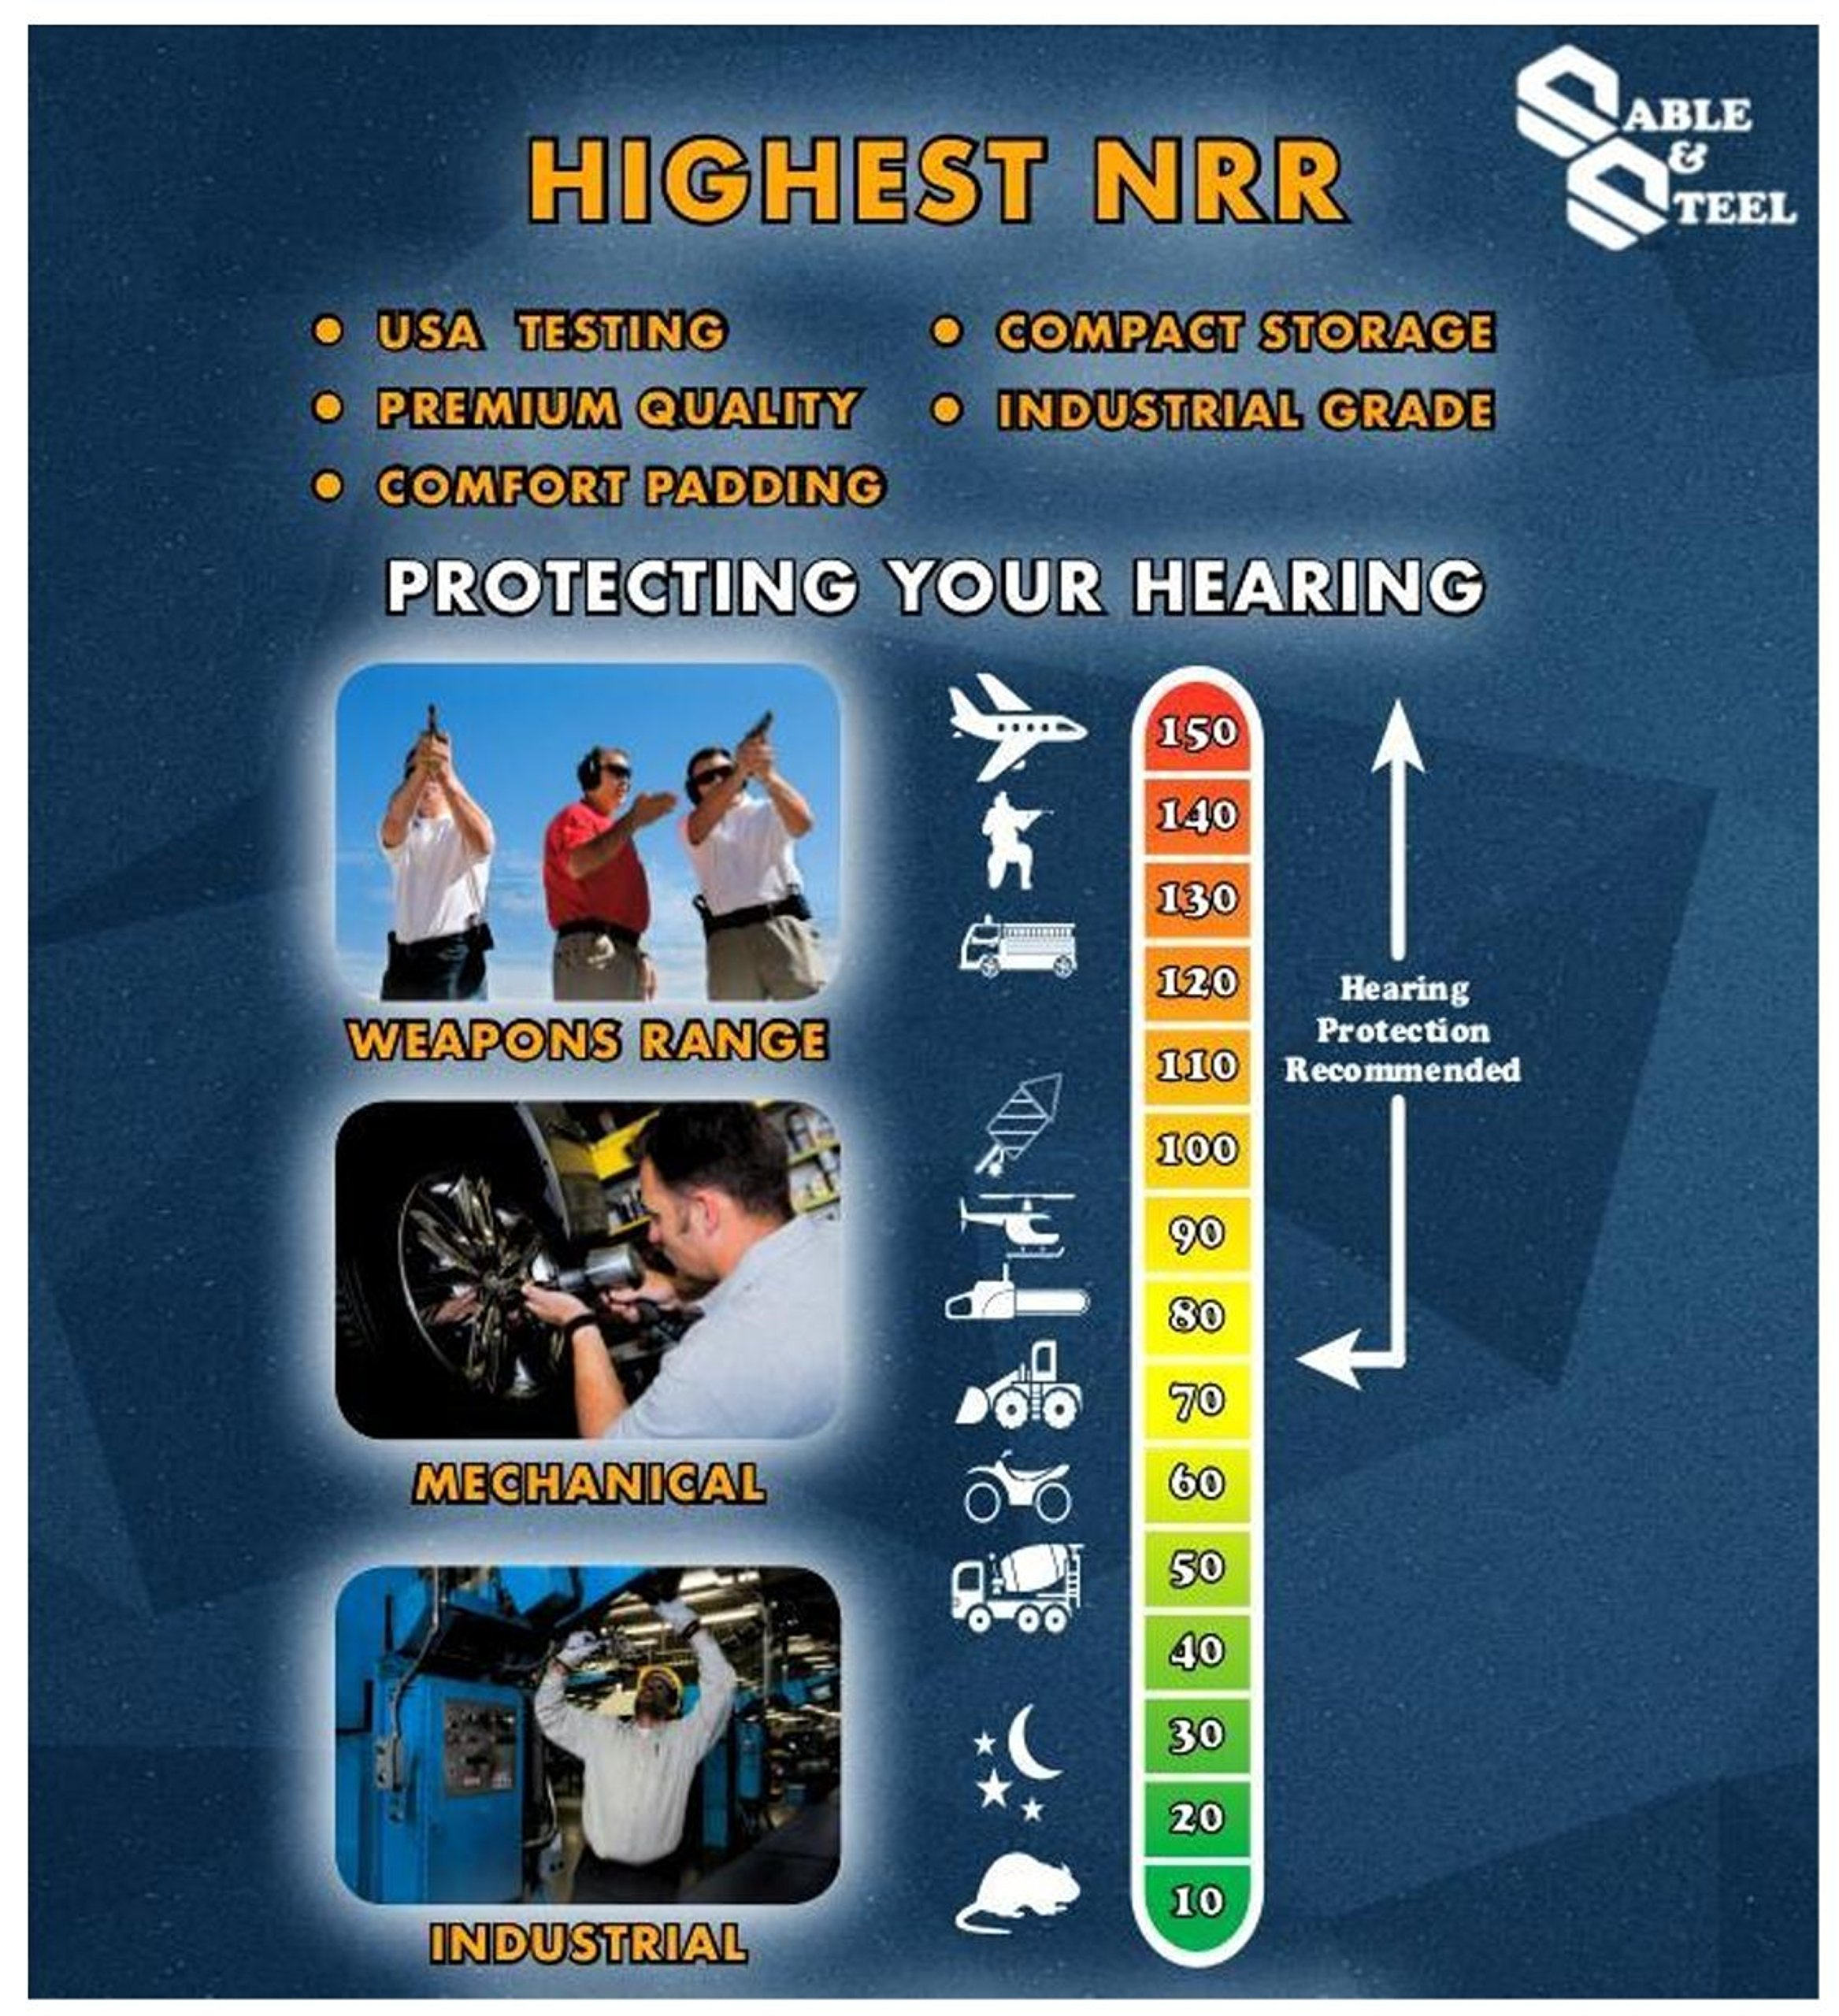 Sable & Steel Highest NRR 35db Safety Ear Muffs Auto Adjustable Earmuffs Shooters Hearing Protection Ear Muffs For Sports Outdoors Shooting Racing Work. Fits Adults Children.Yellow by Sable & Steel (Image #4)